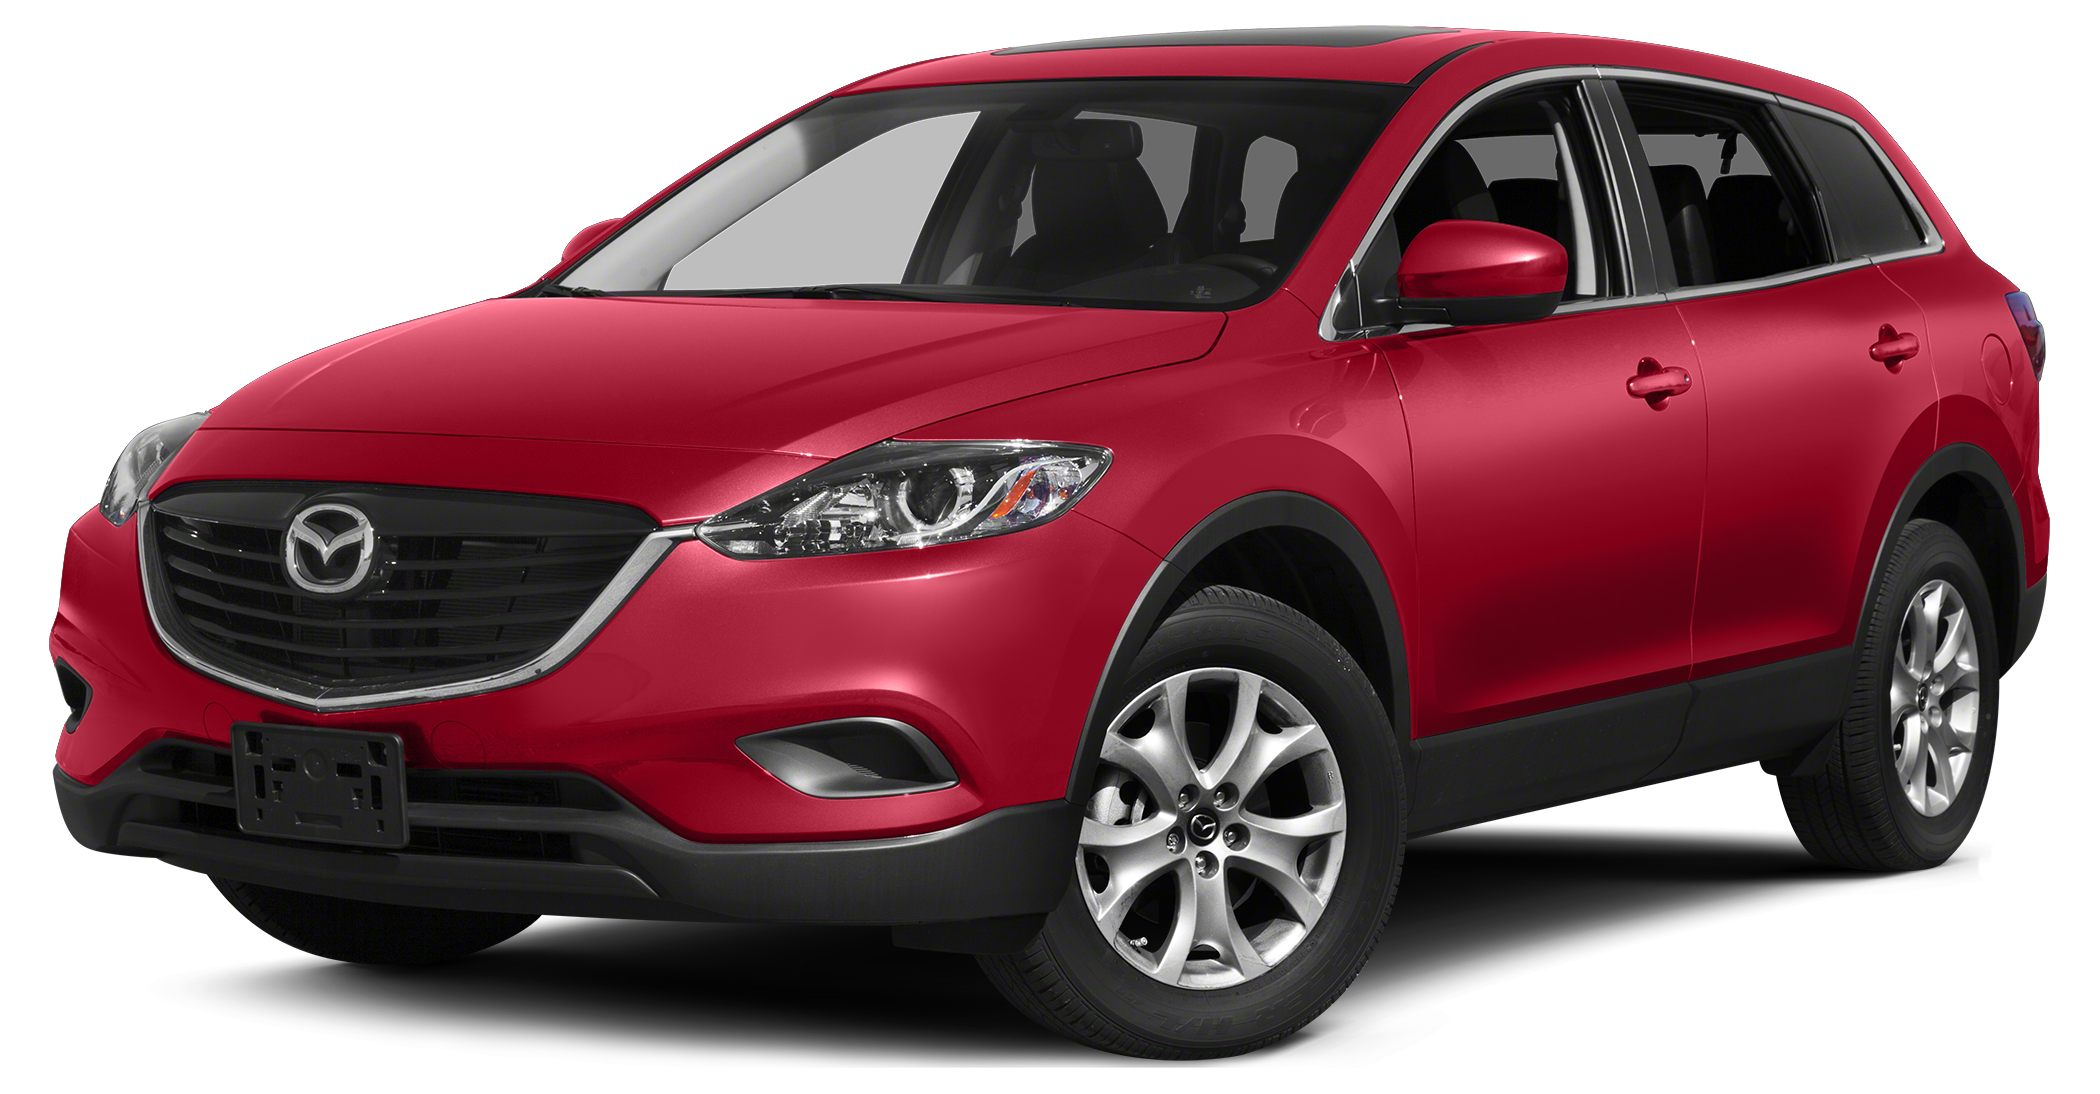 2015 Mazda CX-9 Touring Looking for a used car at an affordable price Outstanding design defines